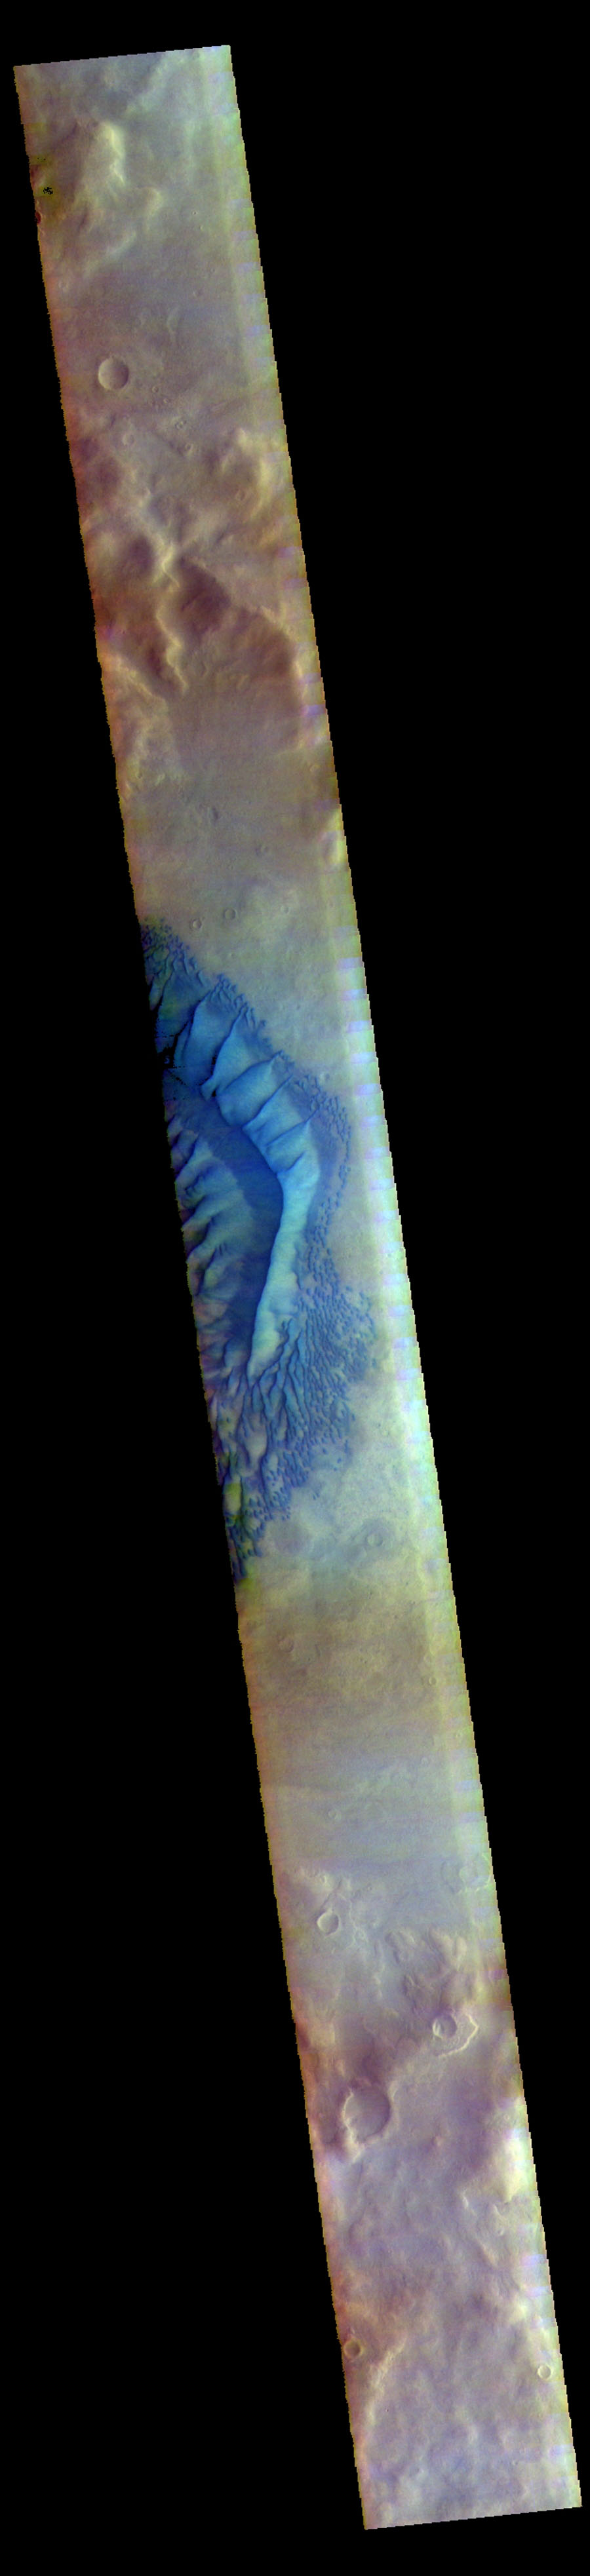 The THEMIS camera contains 5 filters. Data from different filters can be combined in many ways to create a false color image. This image from NASA's 2001 Mars Odyssey spacecraft shows part of Russell Crater in Noachis Terra.